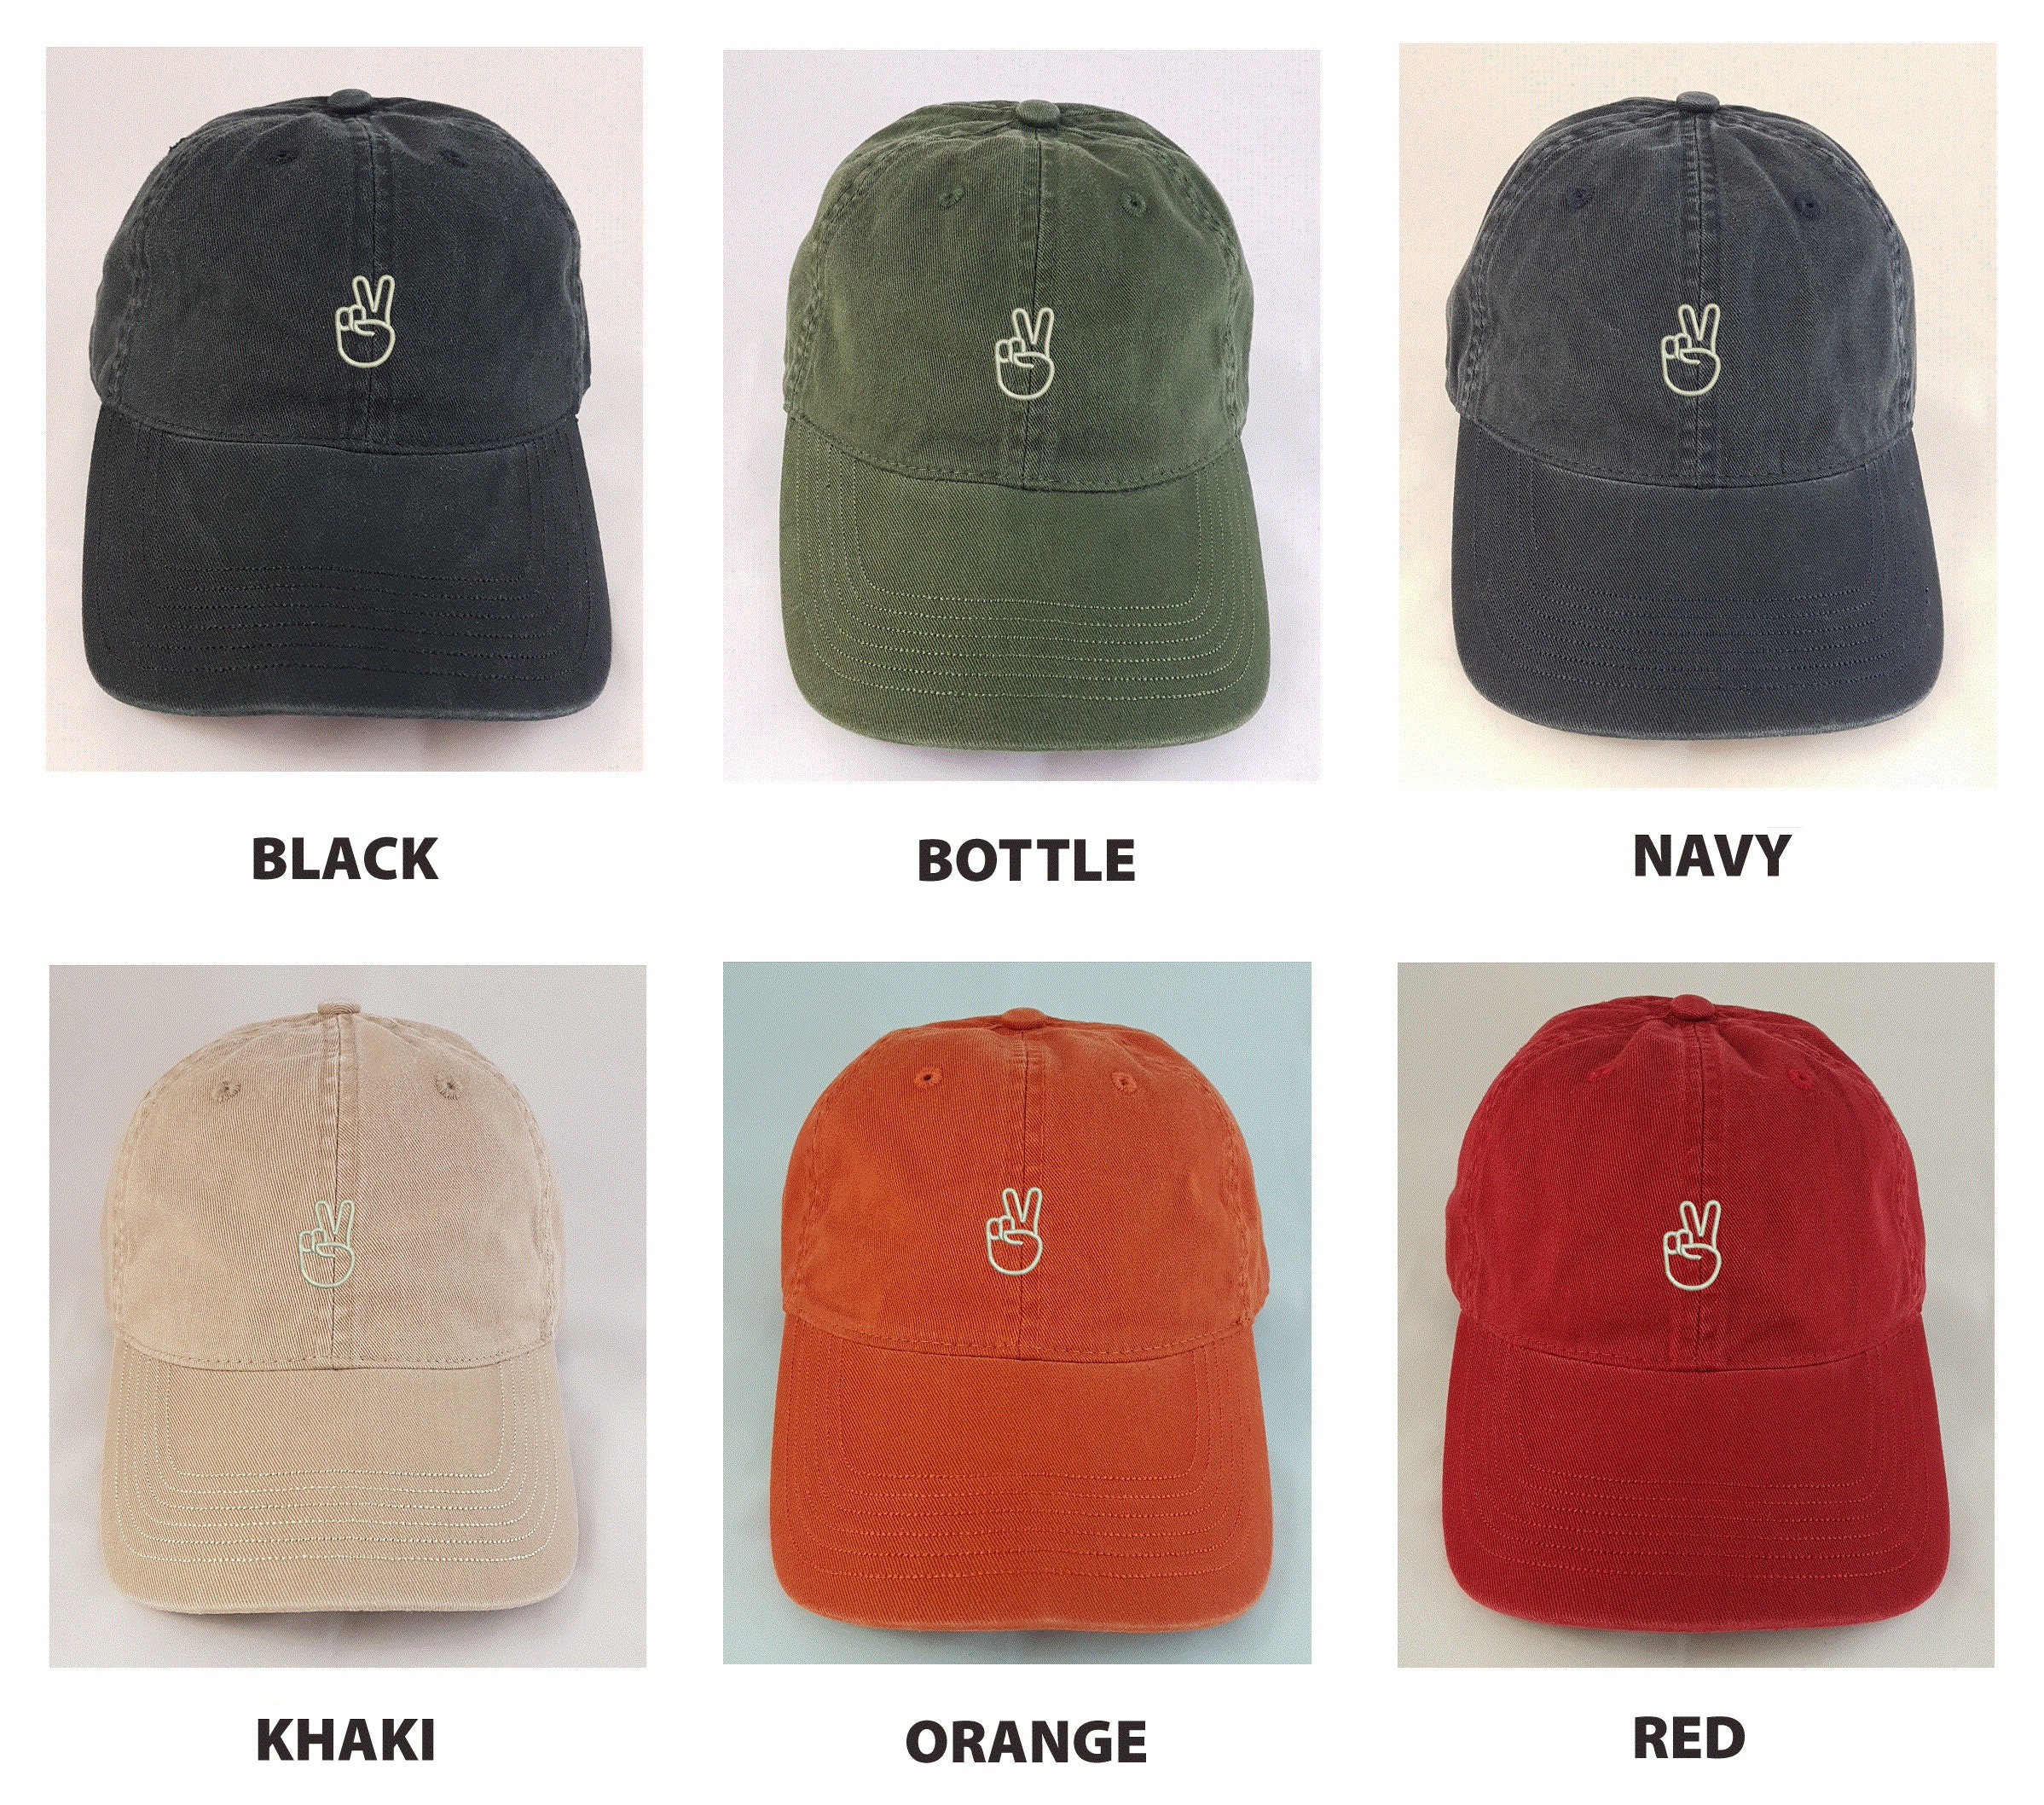 SECURITY on baseball or trucker cap Big bold word embroidered on the front Cool cap that you can wear to anywhere. Now you are a VIP